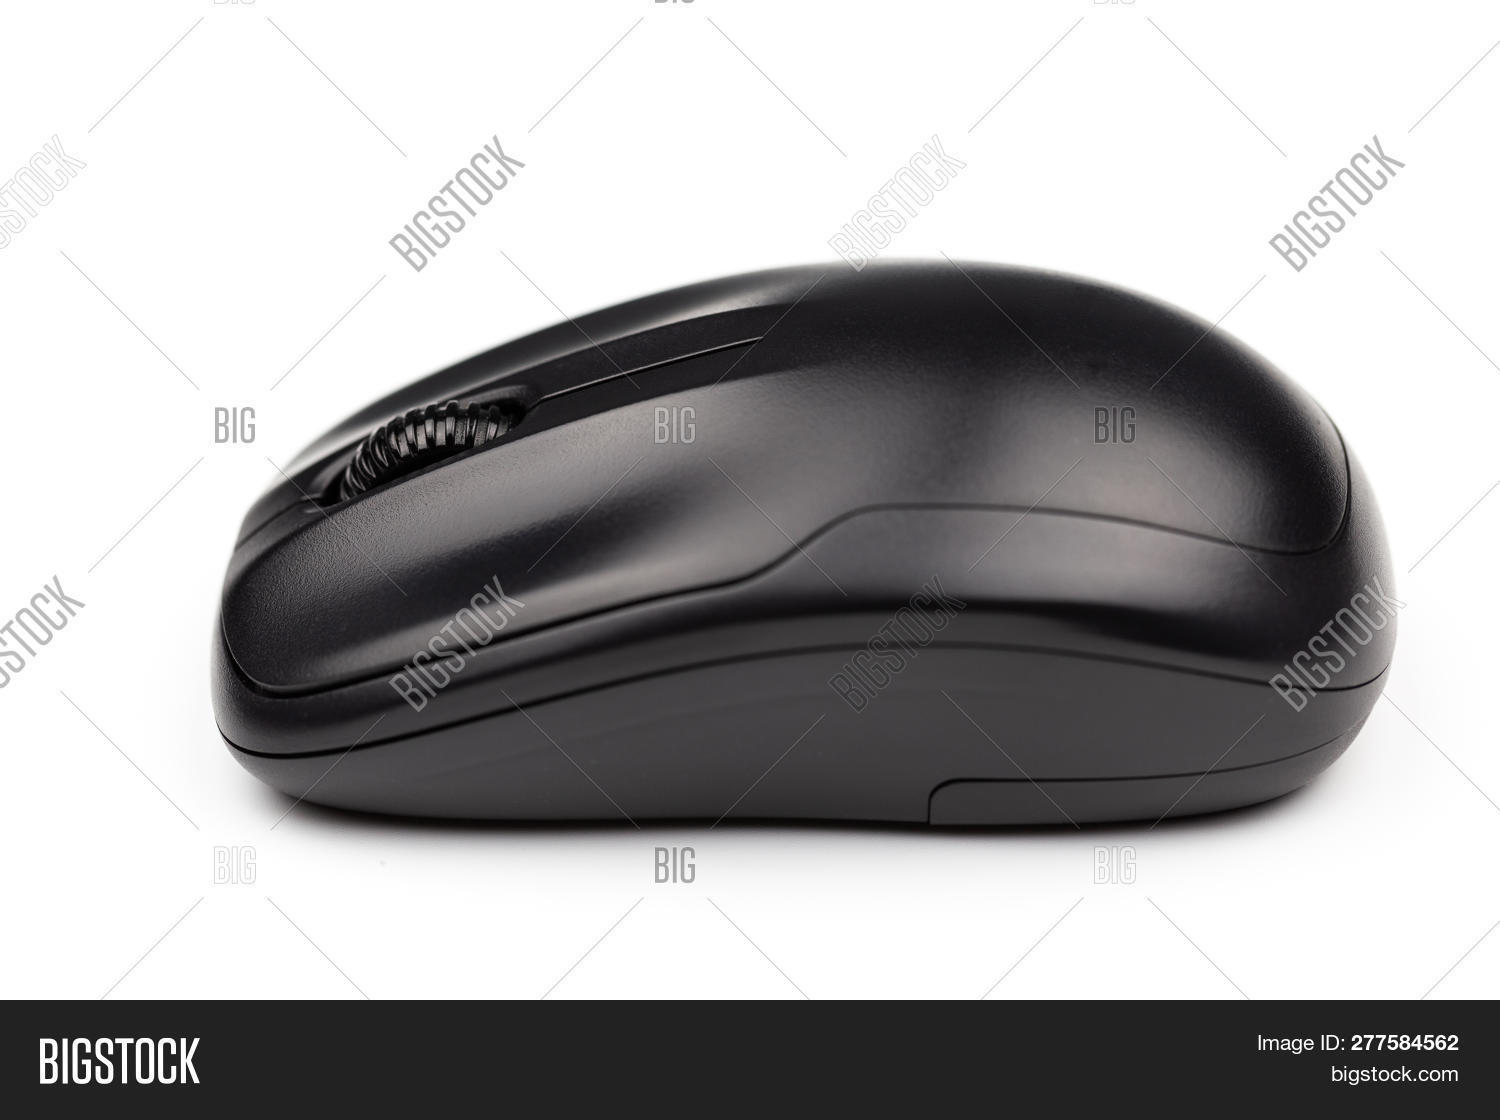 cd880975074 Computer Wireless Mouse Isolated On White Background For Design. Isolated  Background. Closeup Comput